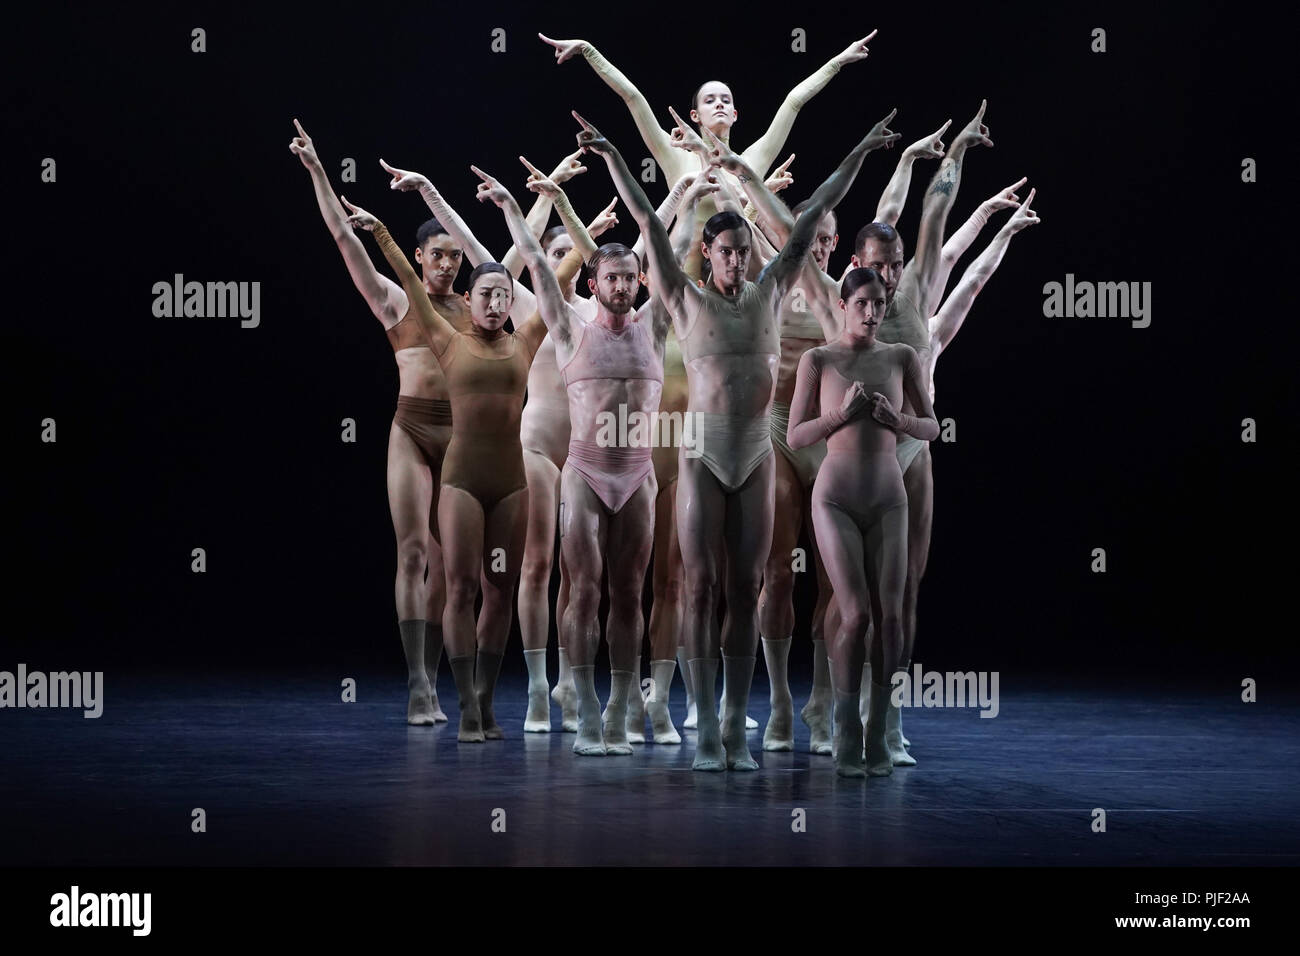 Berlin, Germany. 06th Sep, 2018. Dancers of the Staatsballett Berlin present the choreography 'Half Life' in the Komische Oper. The play will premiere on 7 September 2018. Credit: Jörg Carstensen/dpa/Alamy Live News - Stock Image